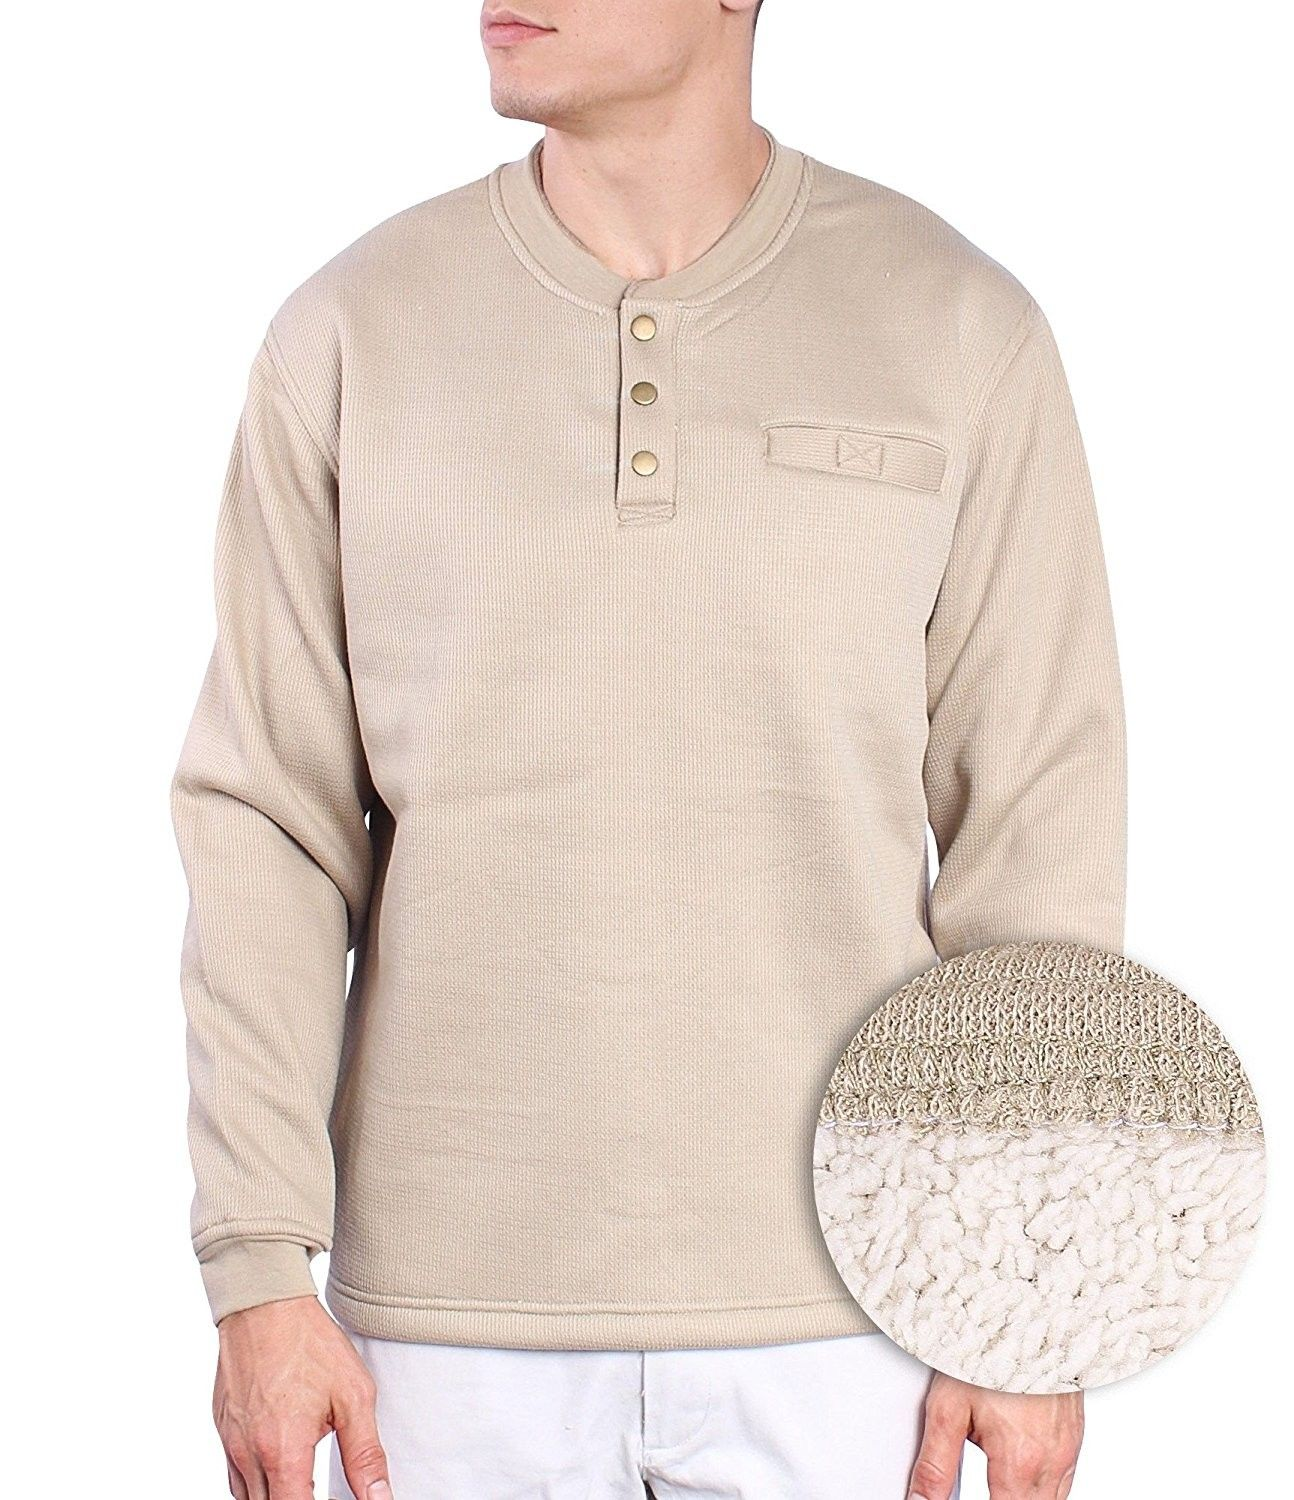 Mens Pullover Fleece Thermal Shirt For Mens Long Sleeve 3 Button Henley -  Tan - CX12MSJ1UQF 4b095853a